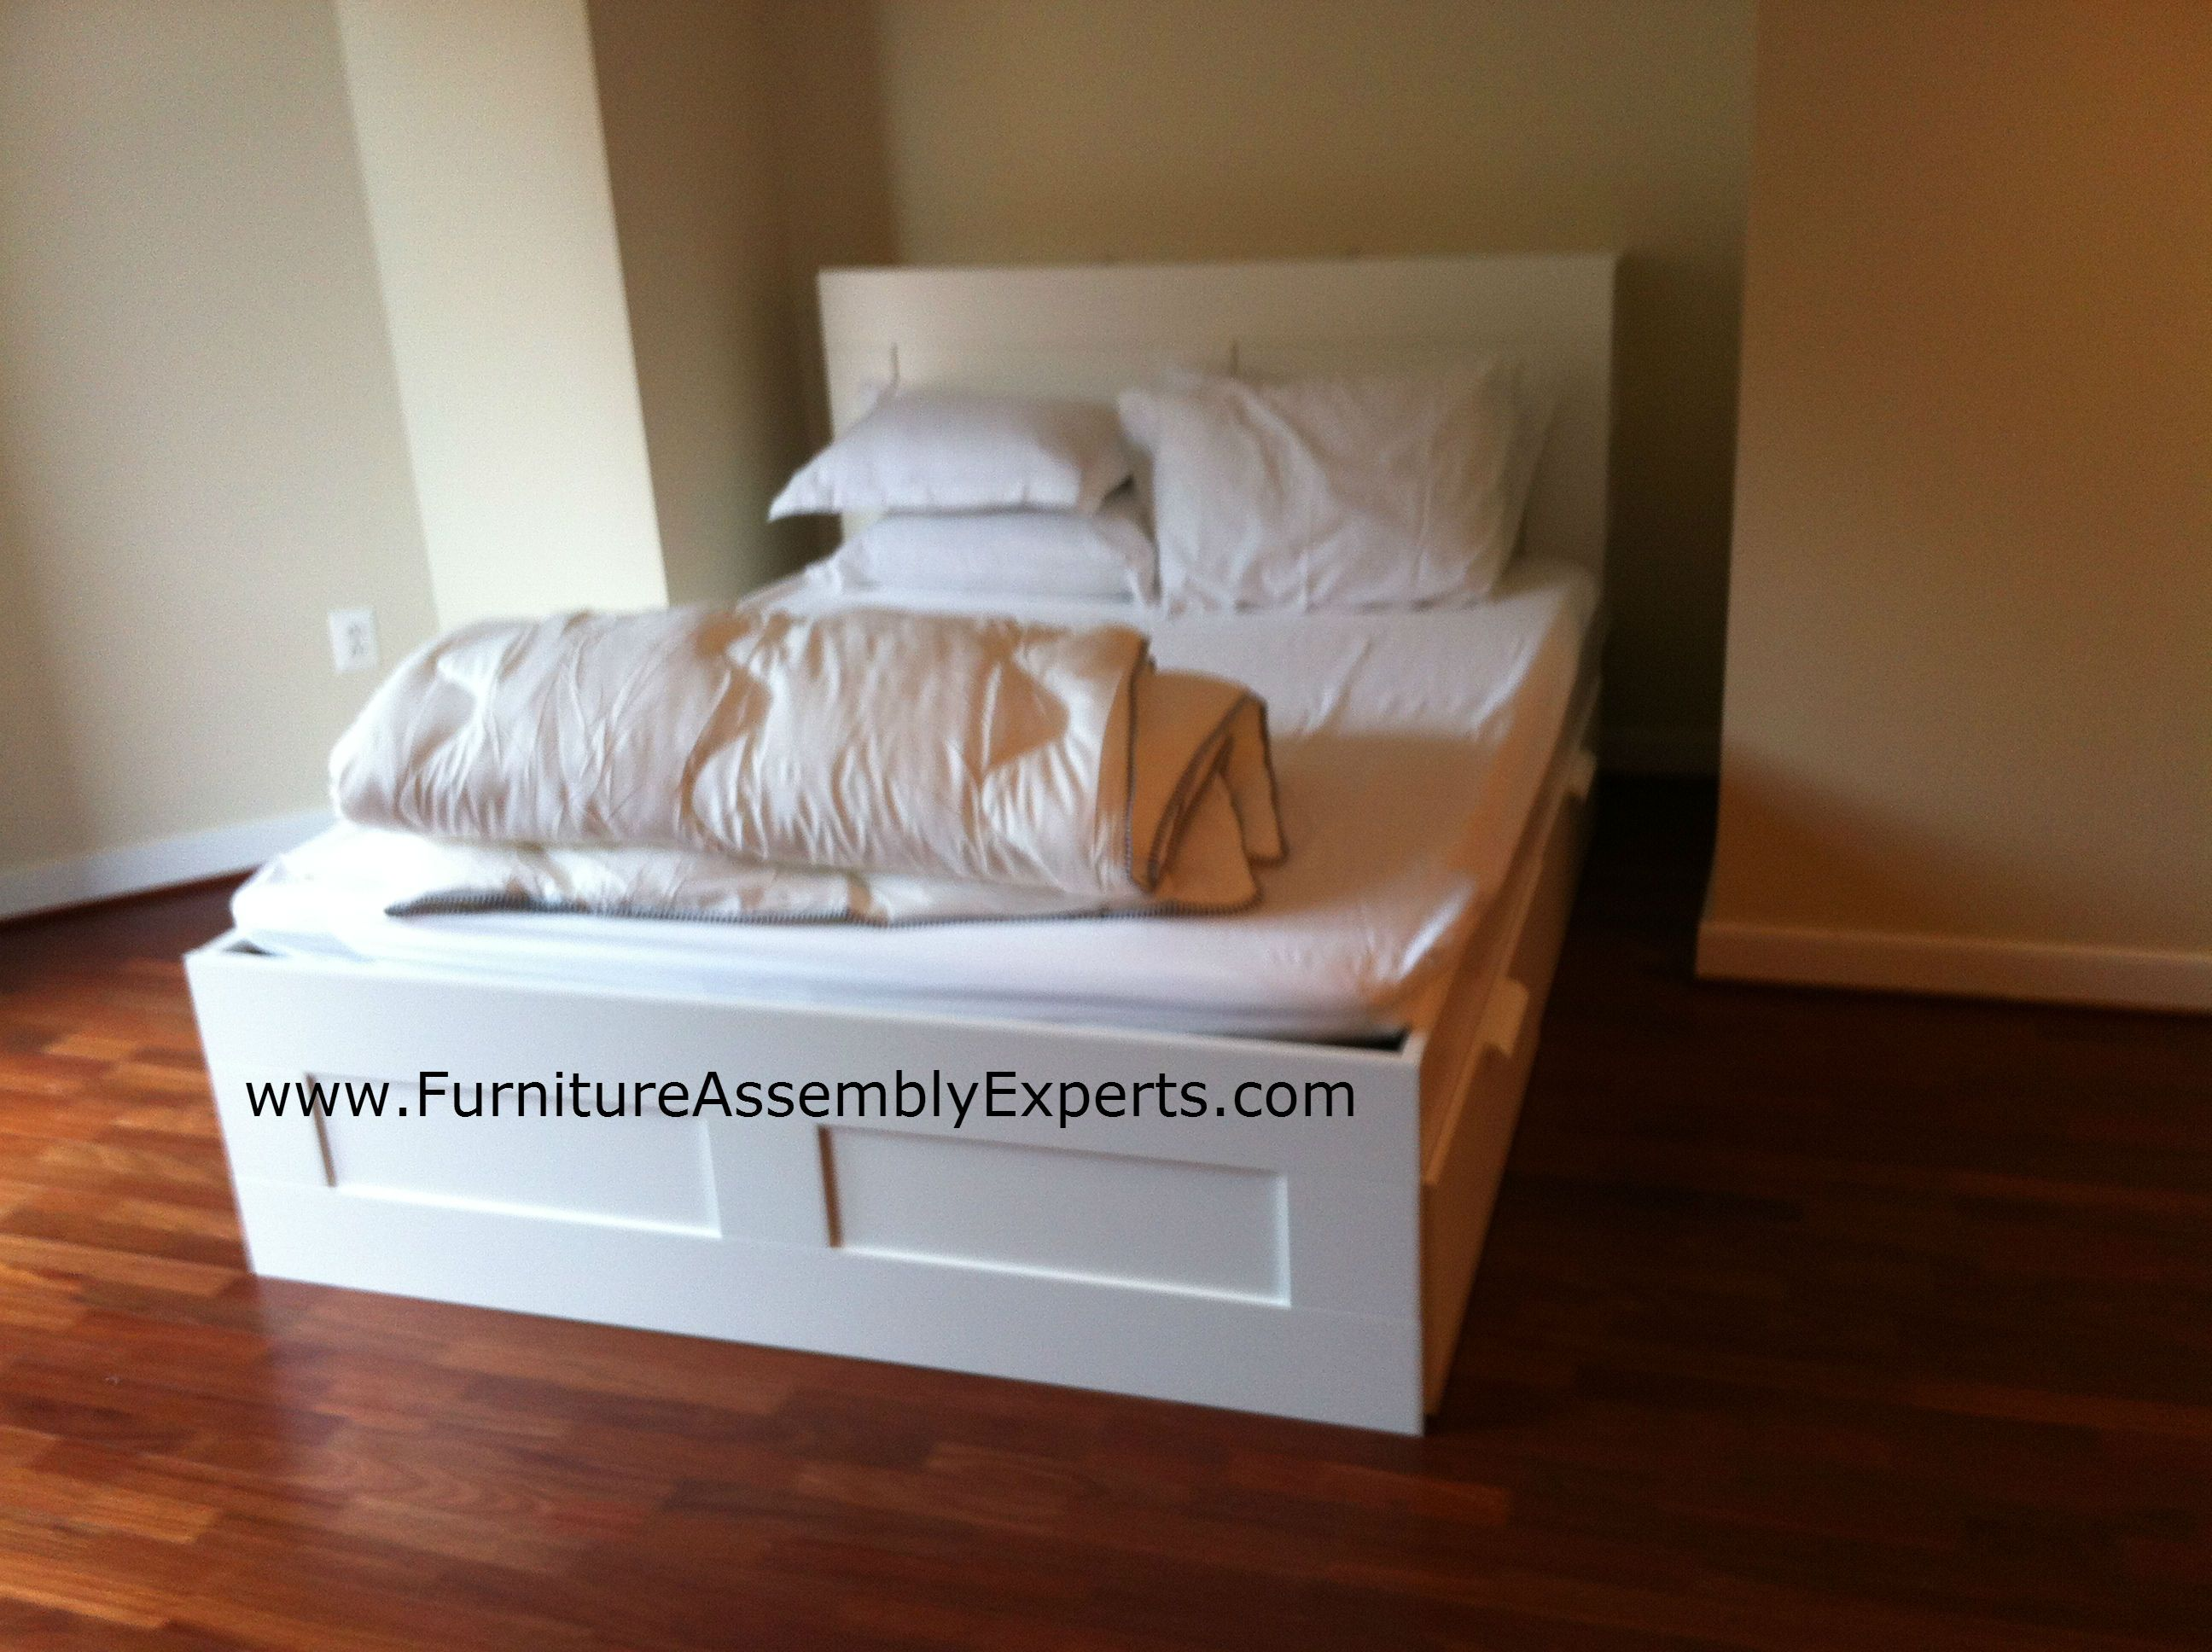 Ikea Brimnes Storage Bed With 4 Drawers And Headboard Assembled In